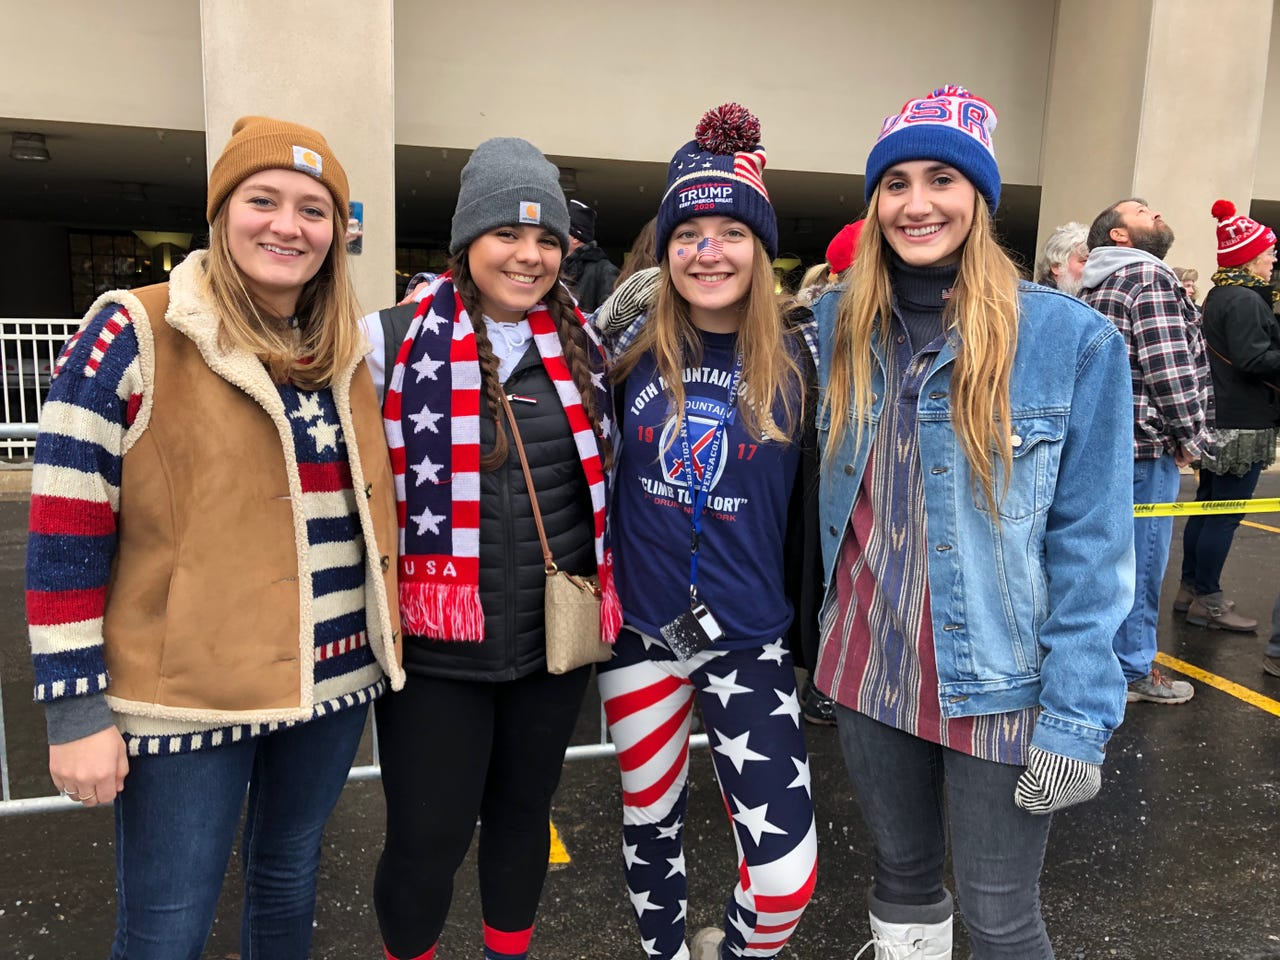 From left, Sarah Kuch, Julia Ulik, Shiloh Kazarovich and Susannah Kuch, all of Neosho, were decked out in American flag-themed clothes for President Donald Trump's rally in Milwaukee on Jan. 14, 2020.